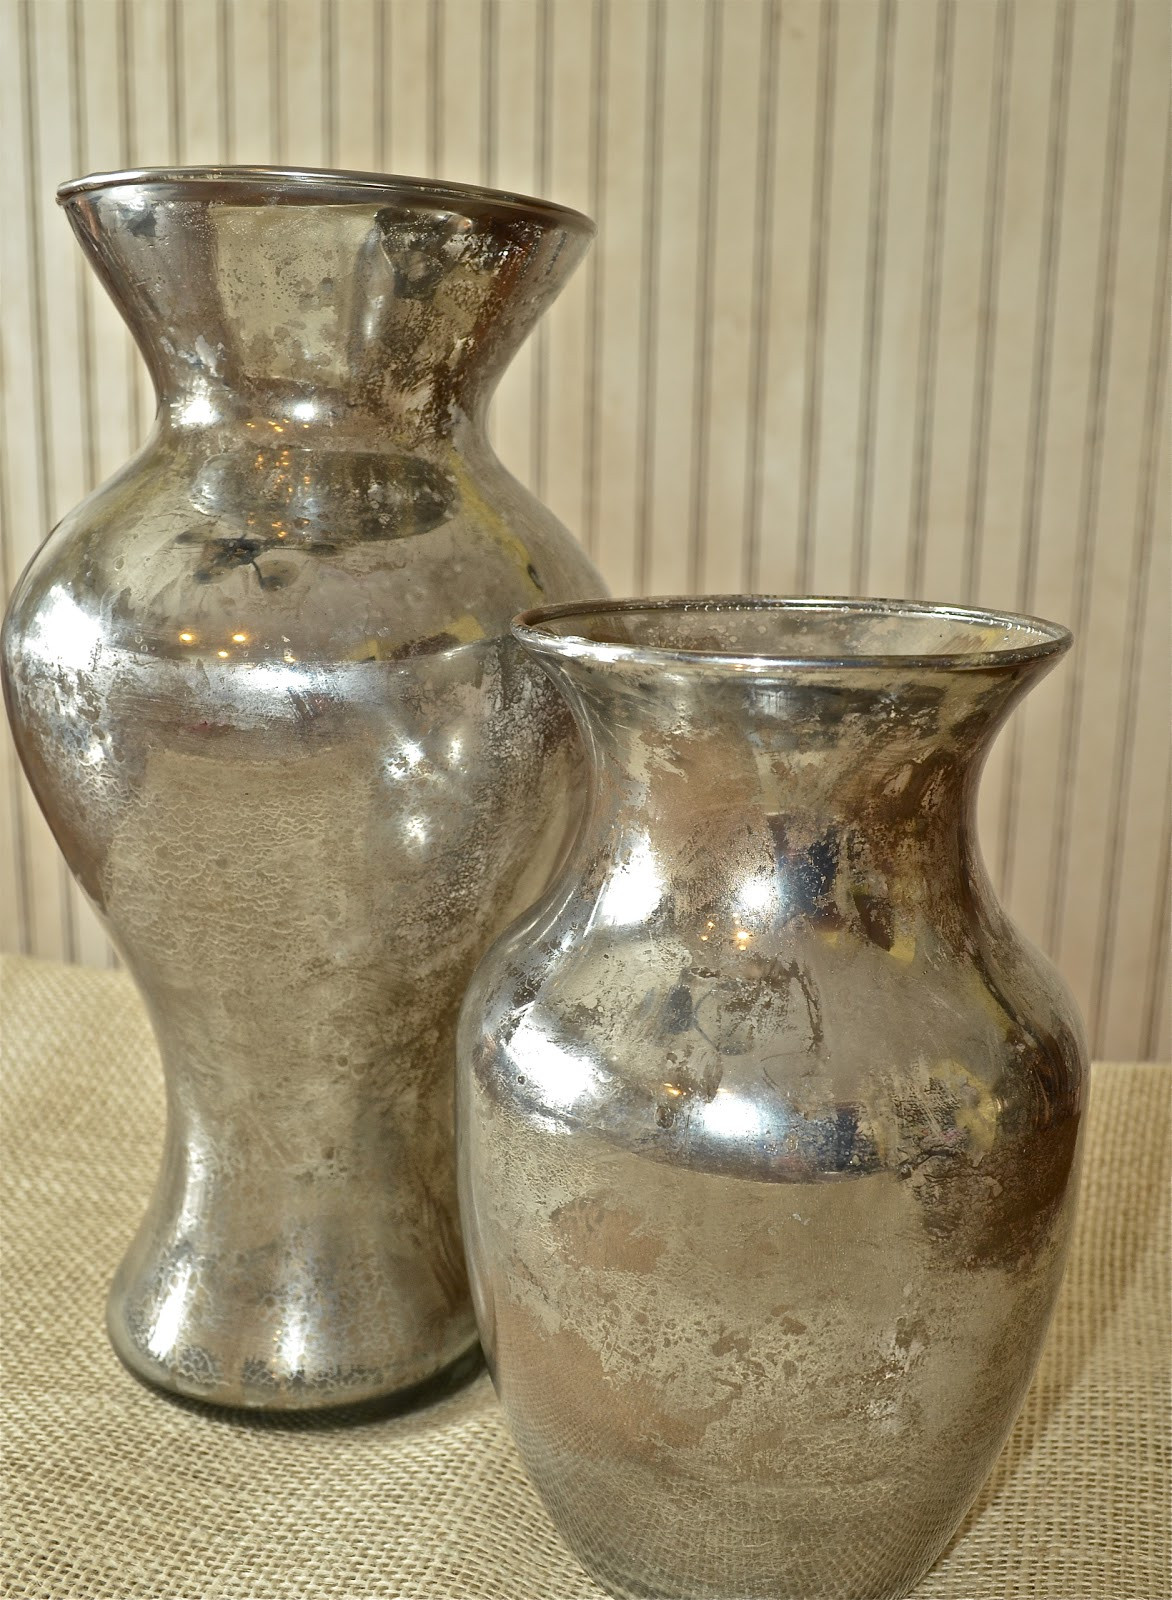 Best ideas about Mercury Glass DIY . Save or Pin My Best Friend s Blog DIY Mercury Glass Now.